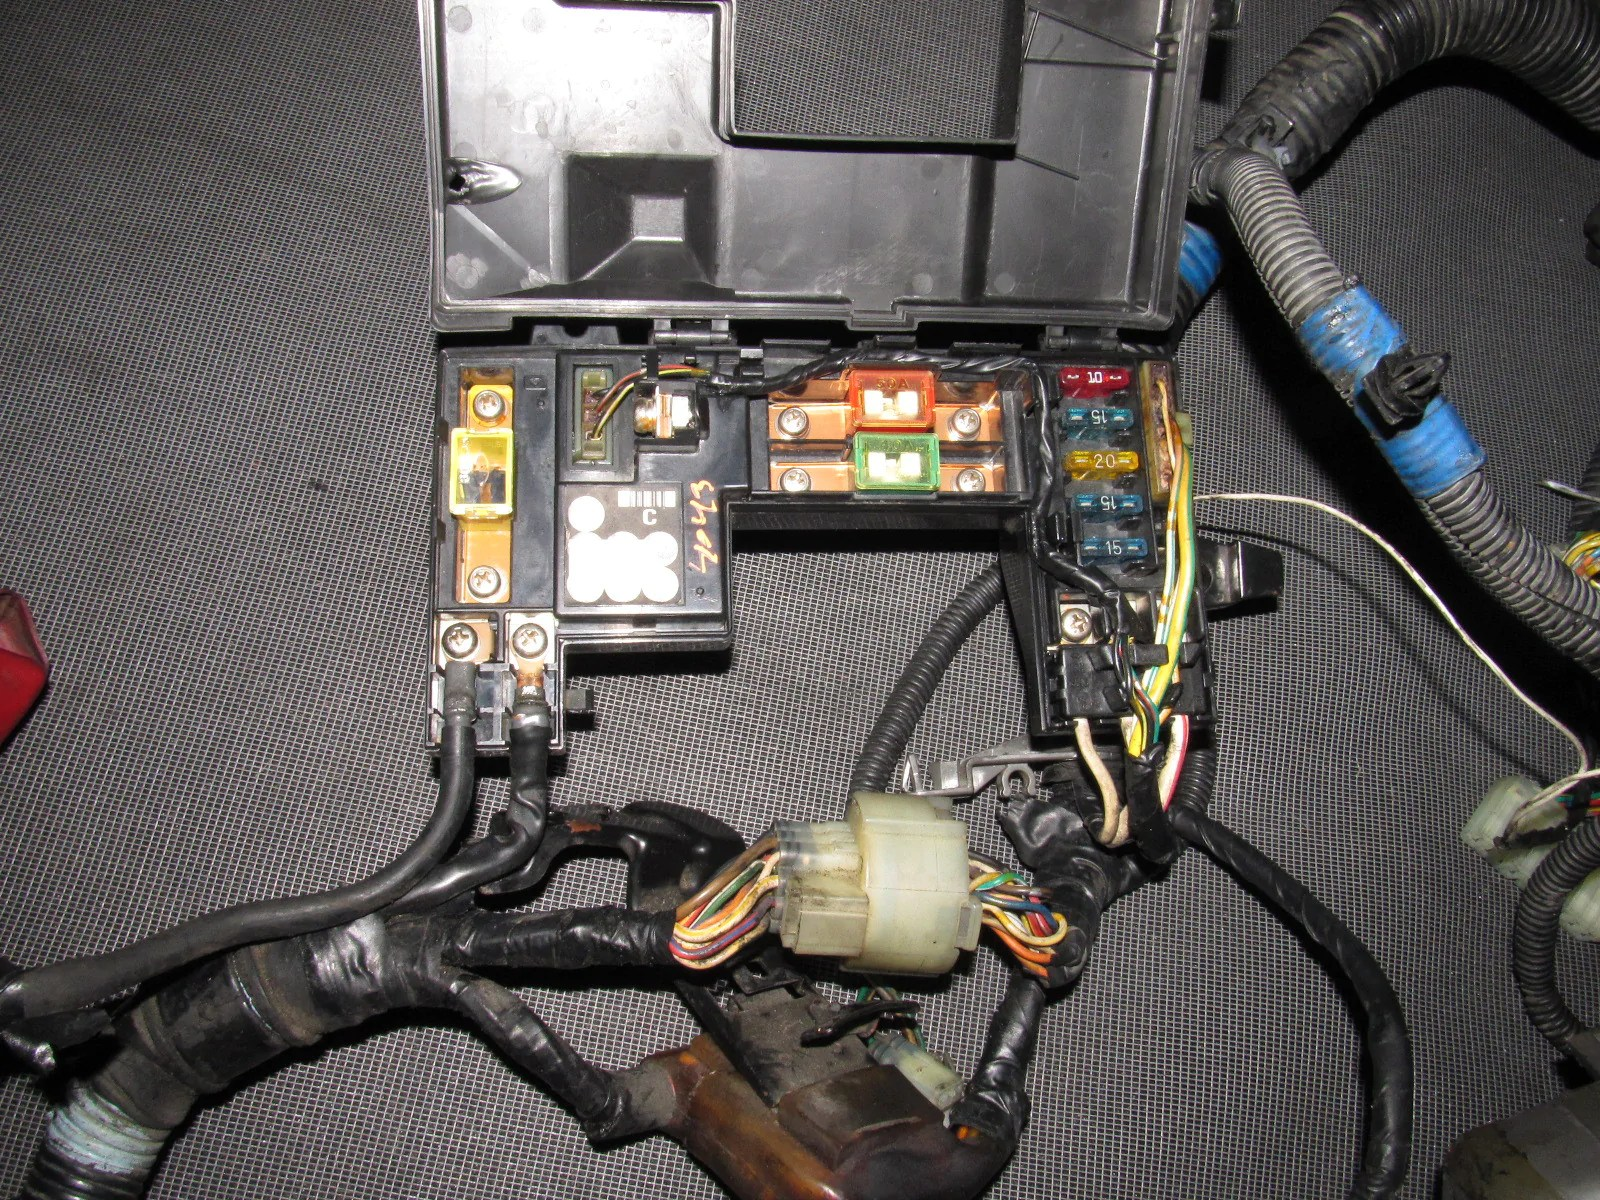 hight resolution of  honda crx wiring harness wiring diagram expert on 1970 chevelle ss wiring harness diagram 91 crx si